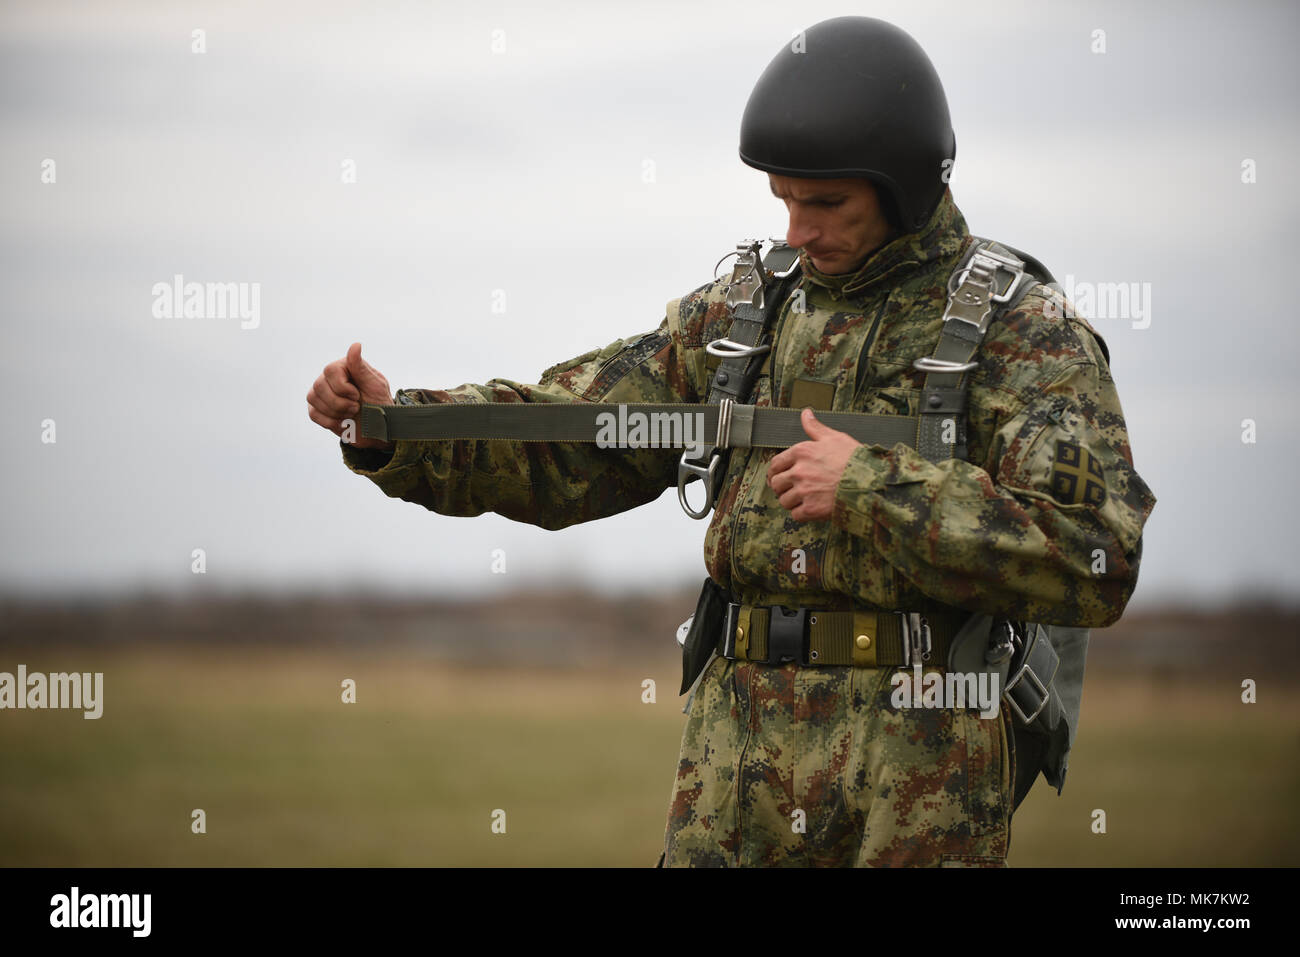 How many lines do parachute paratroopers have